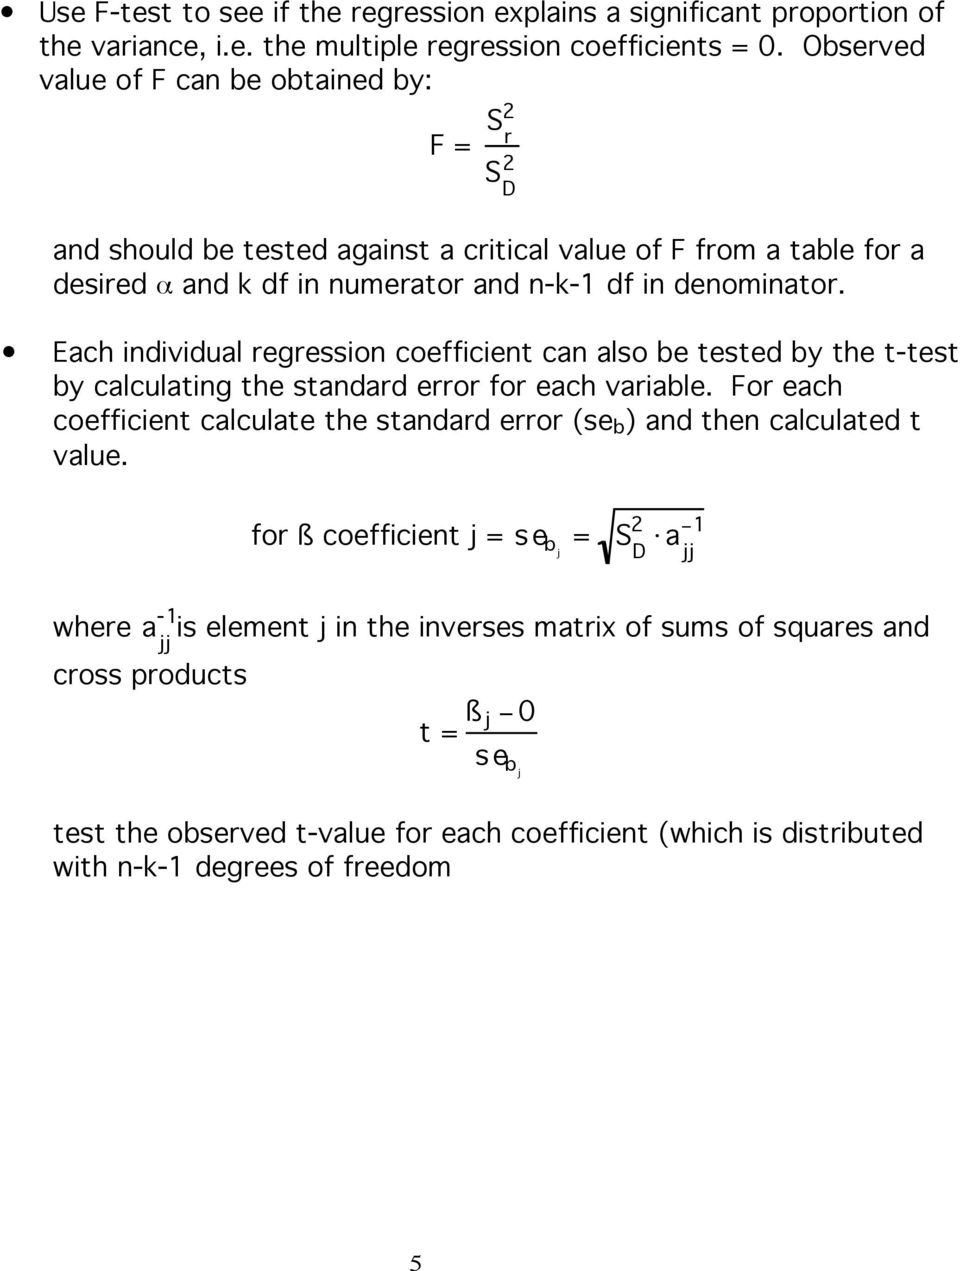 Each individual regression coefficient can also be tested by the t-test by calculating the standard error for each variable.